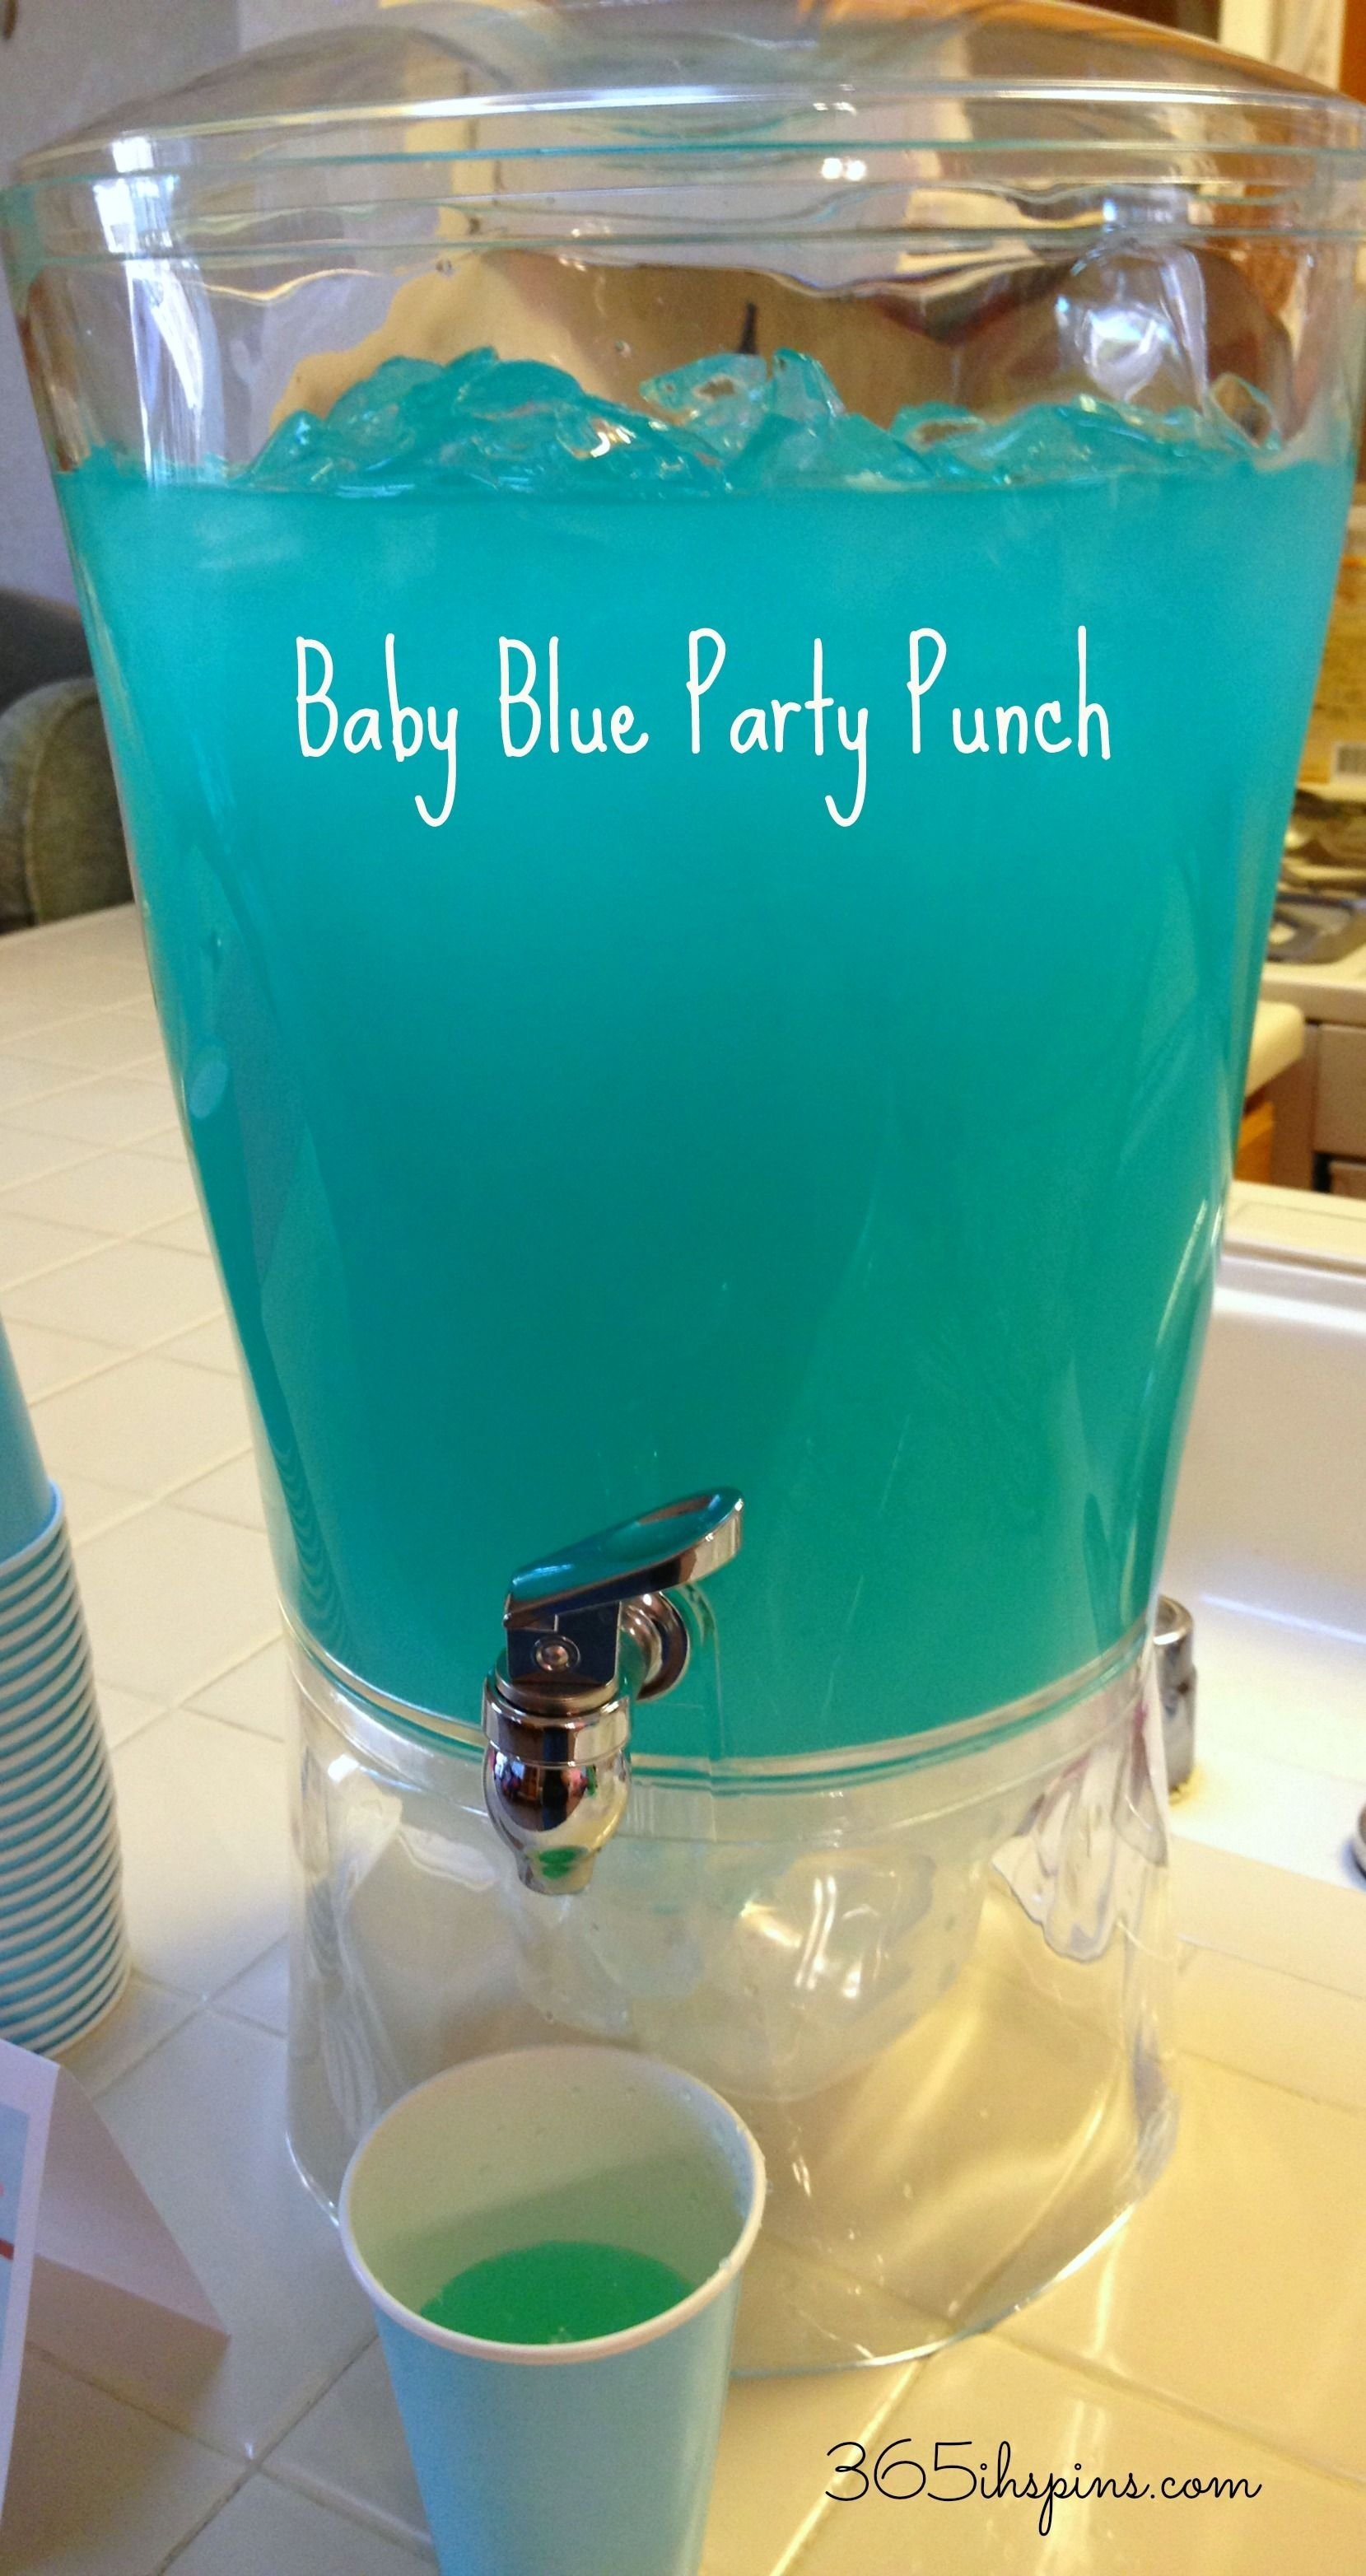 10 Gorgeous Baby Shower Food And Drink Ideas blue punch for baby shower day 291 pretty pink punch baby blue 2021